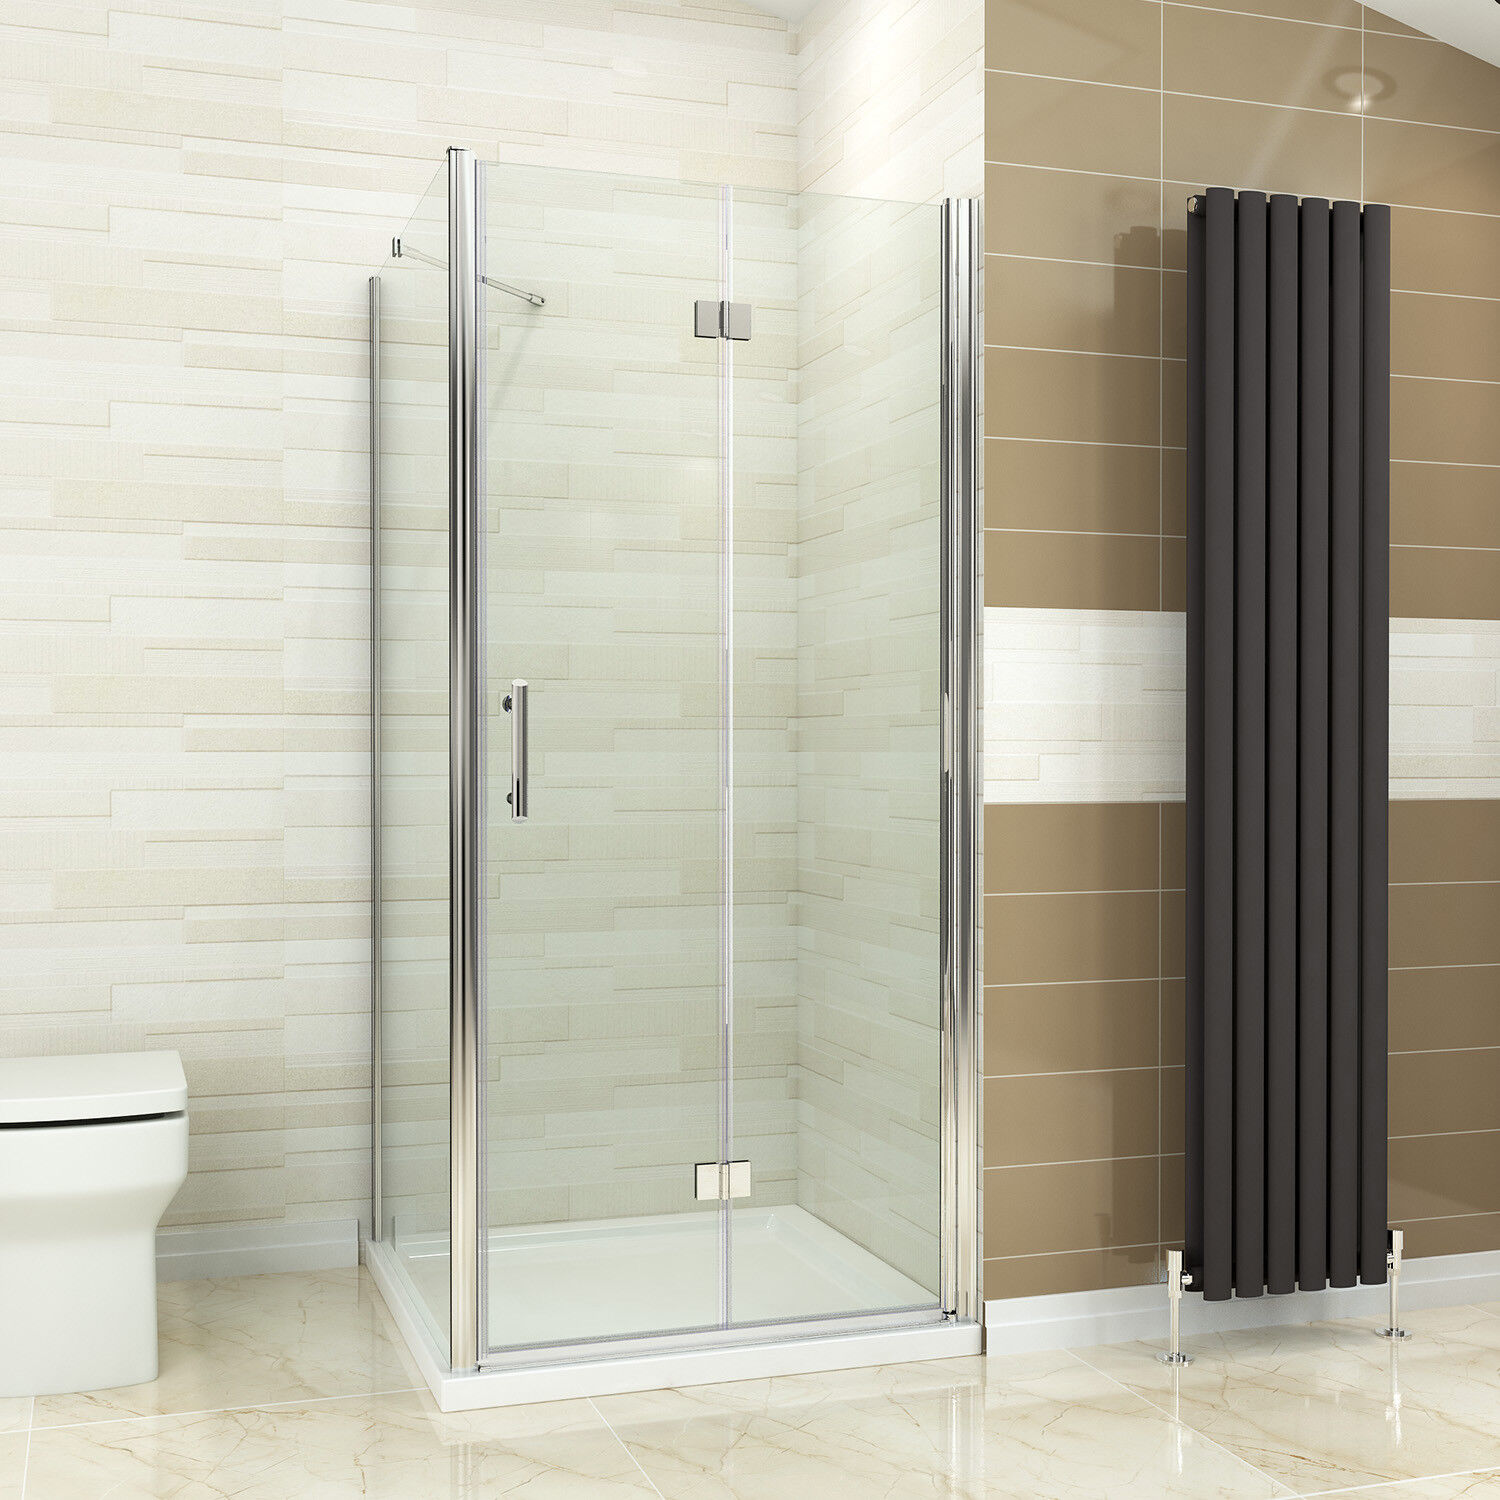 Details About Frameless Shower Enclosure Bifold Door Side Panel And Tray 700 760 800 900 100